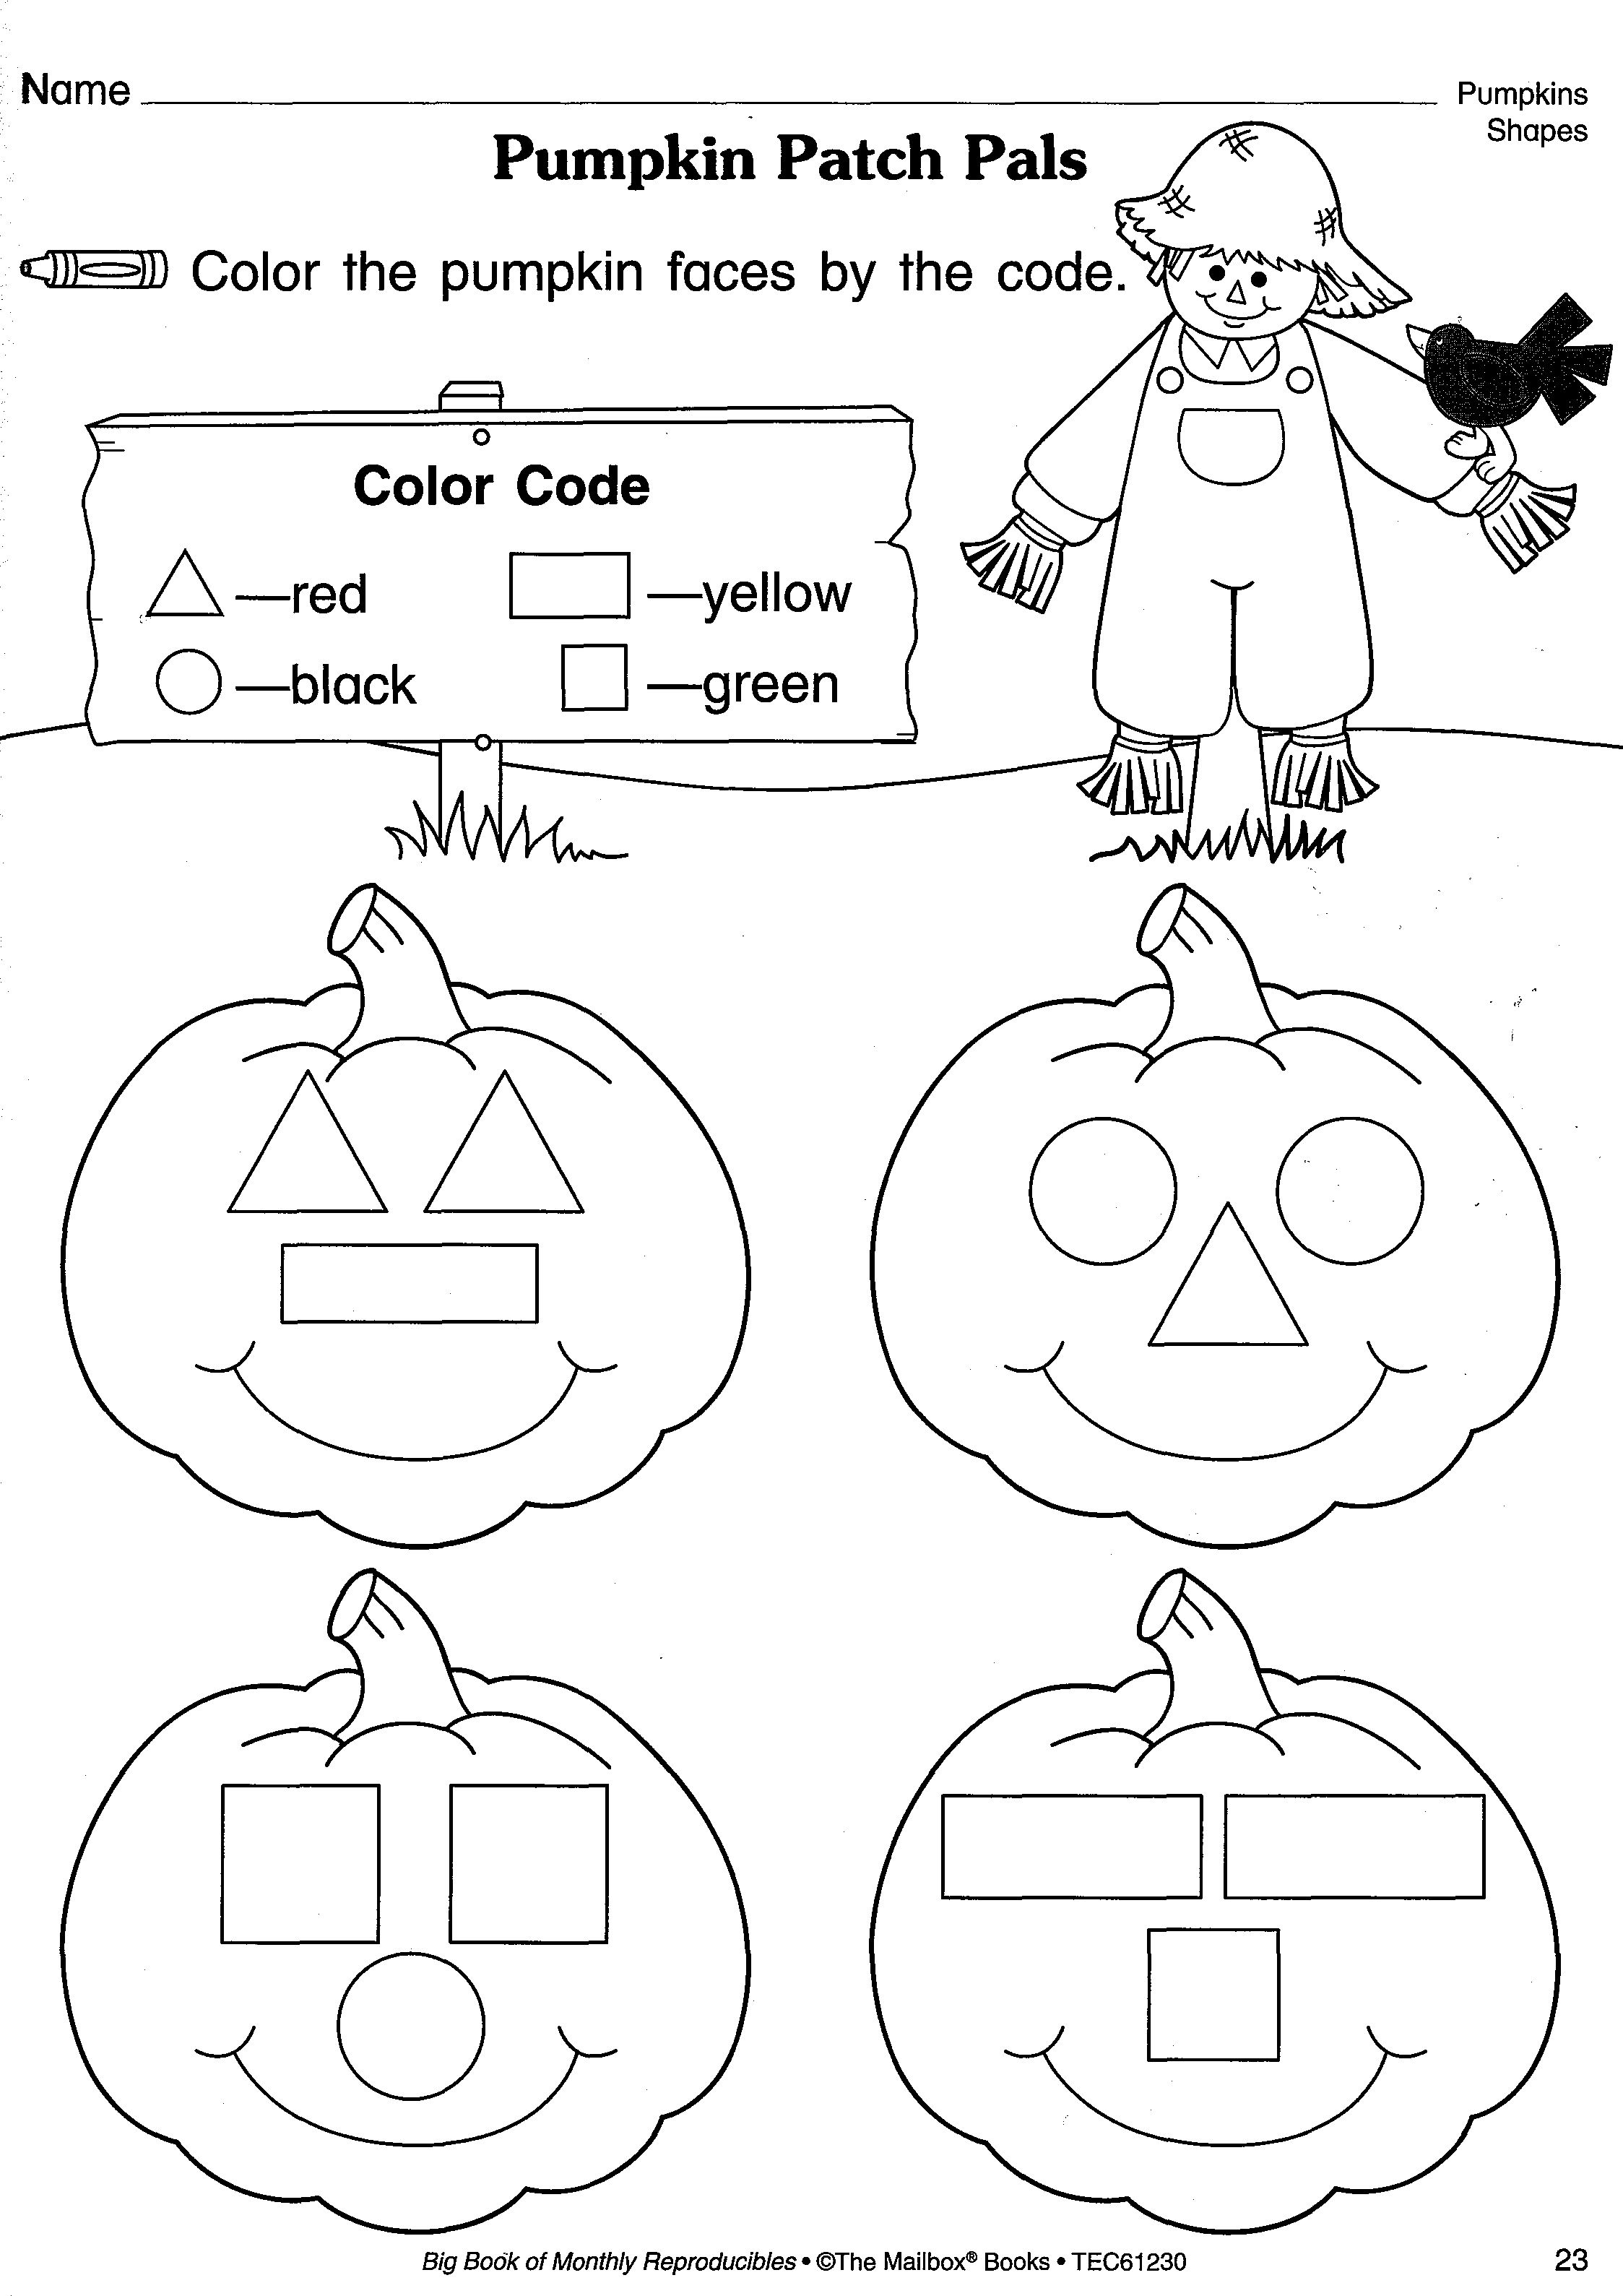 Fall Reproducible Page - Pumpkin Patch Pals for practicing colors ...